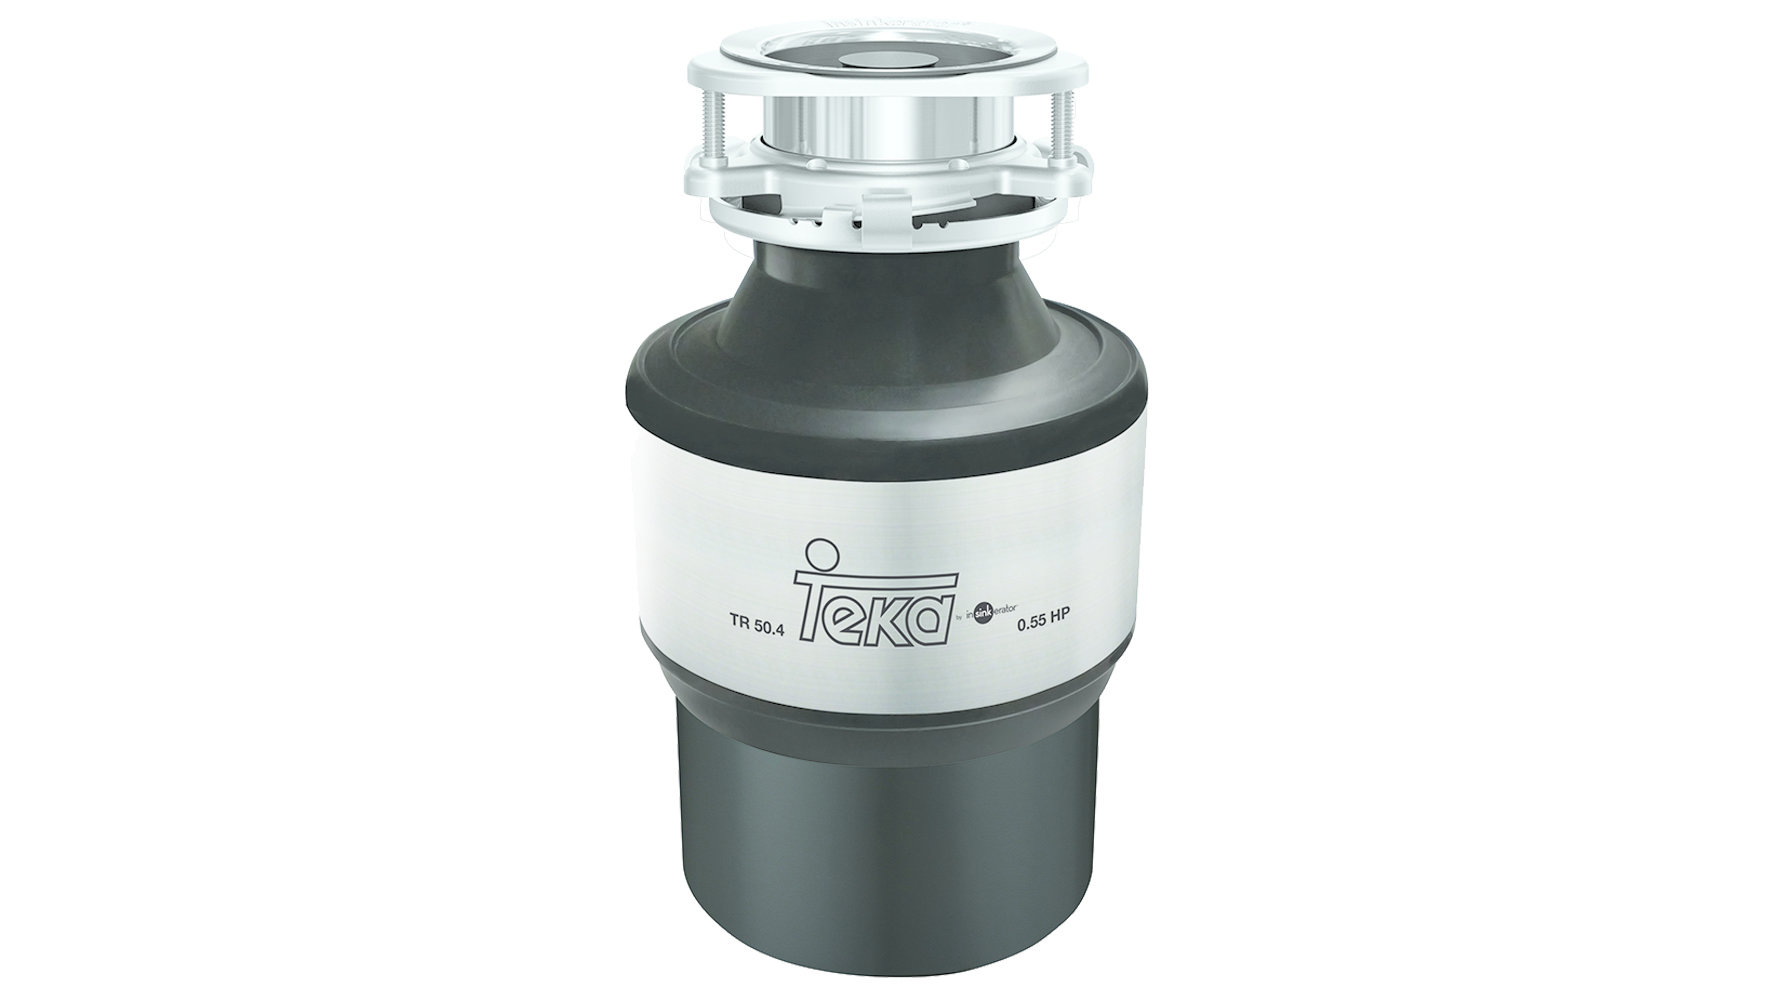 Grinder for stainless steel sink